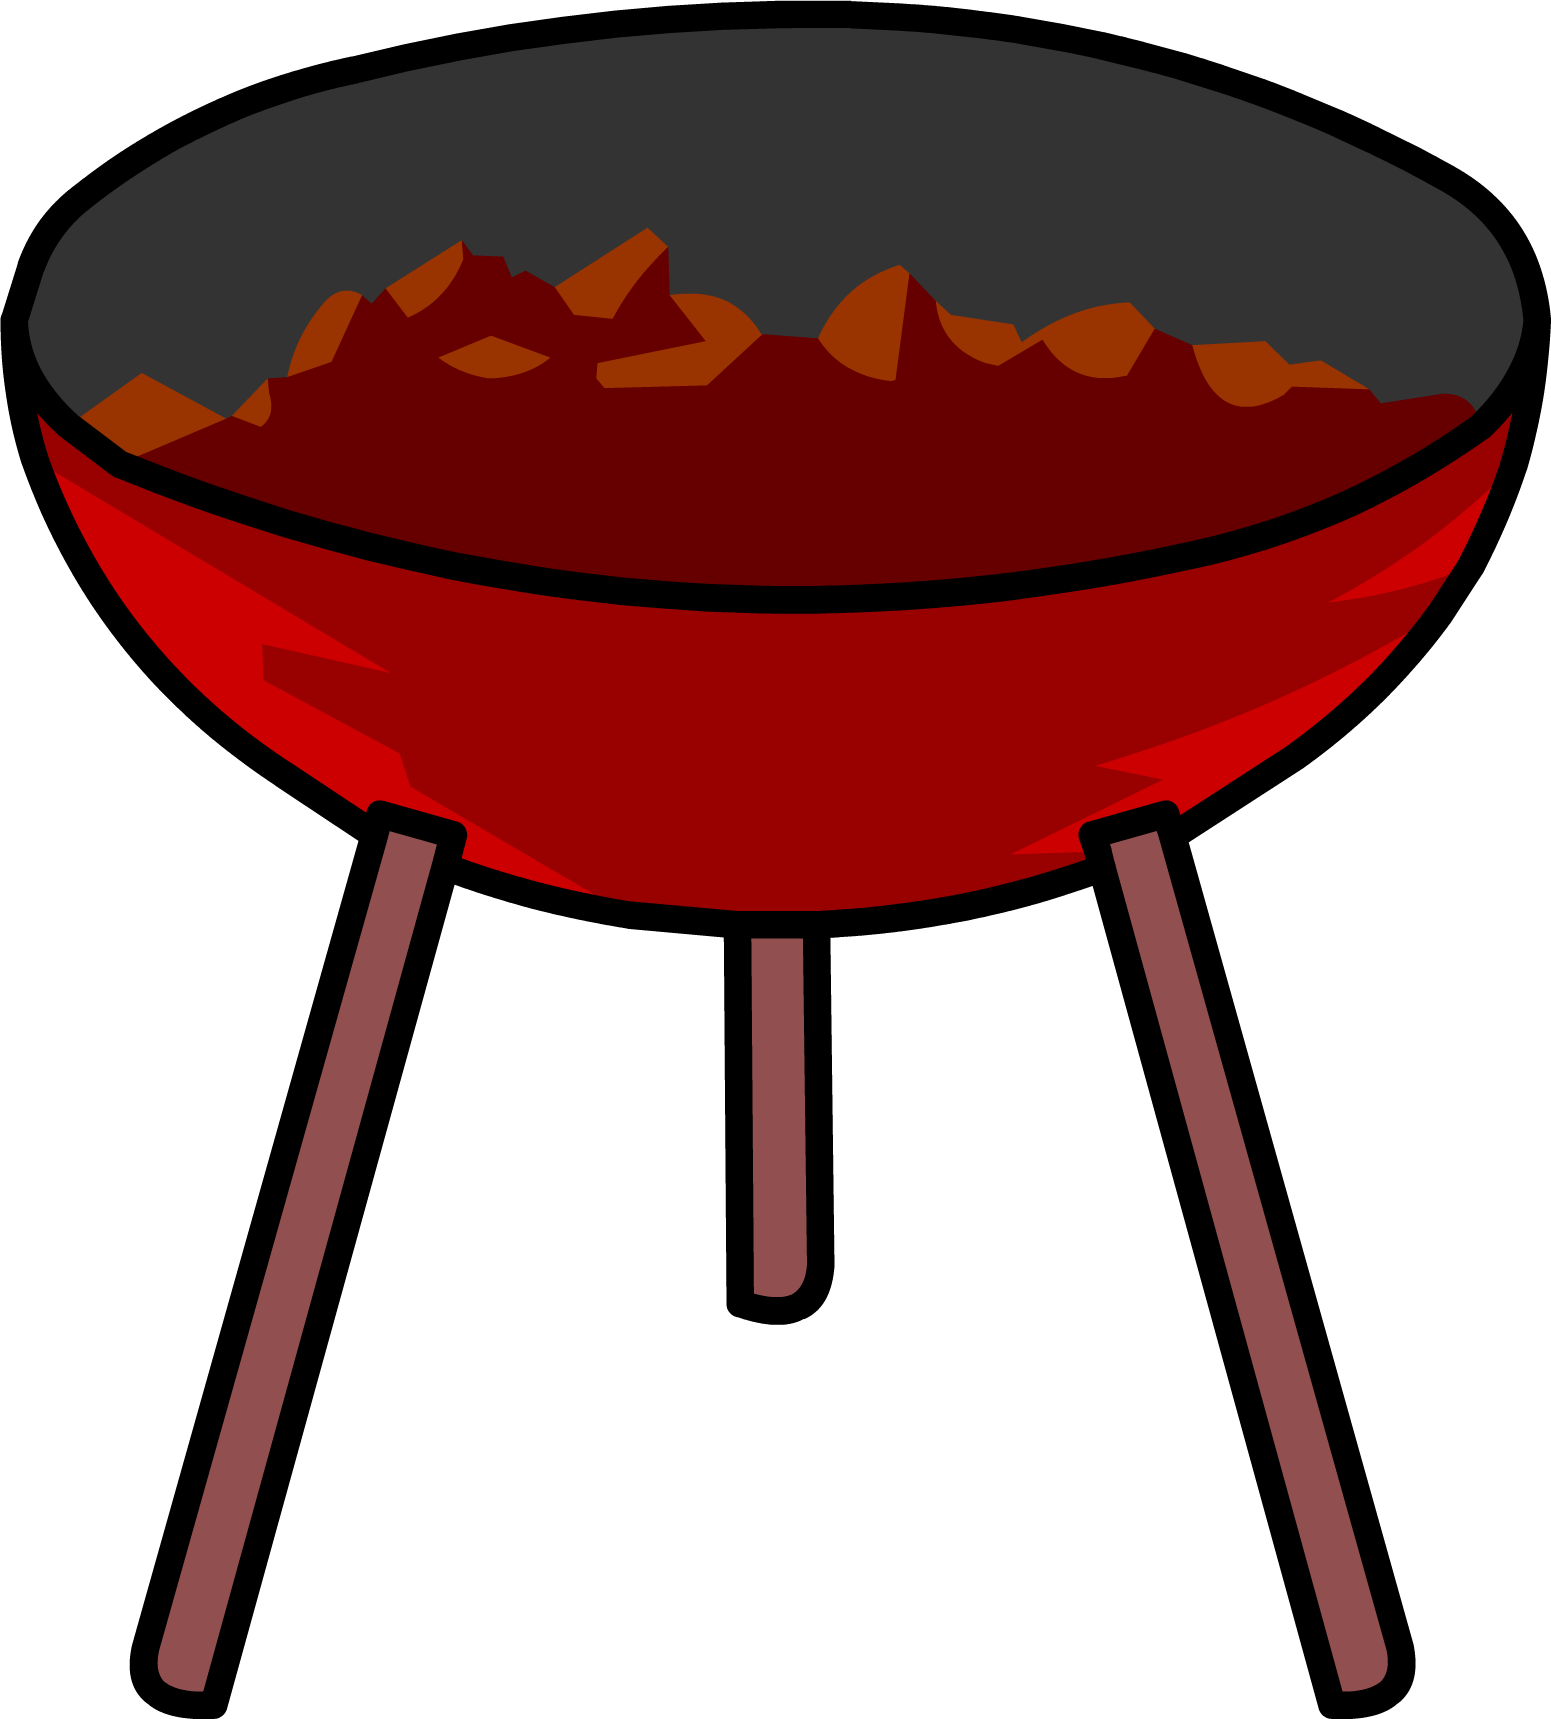 Grill bbq png. Image barbecue club penguin